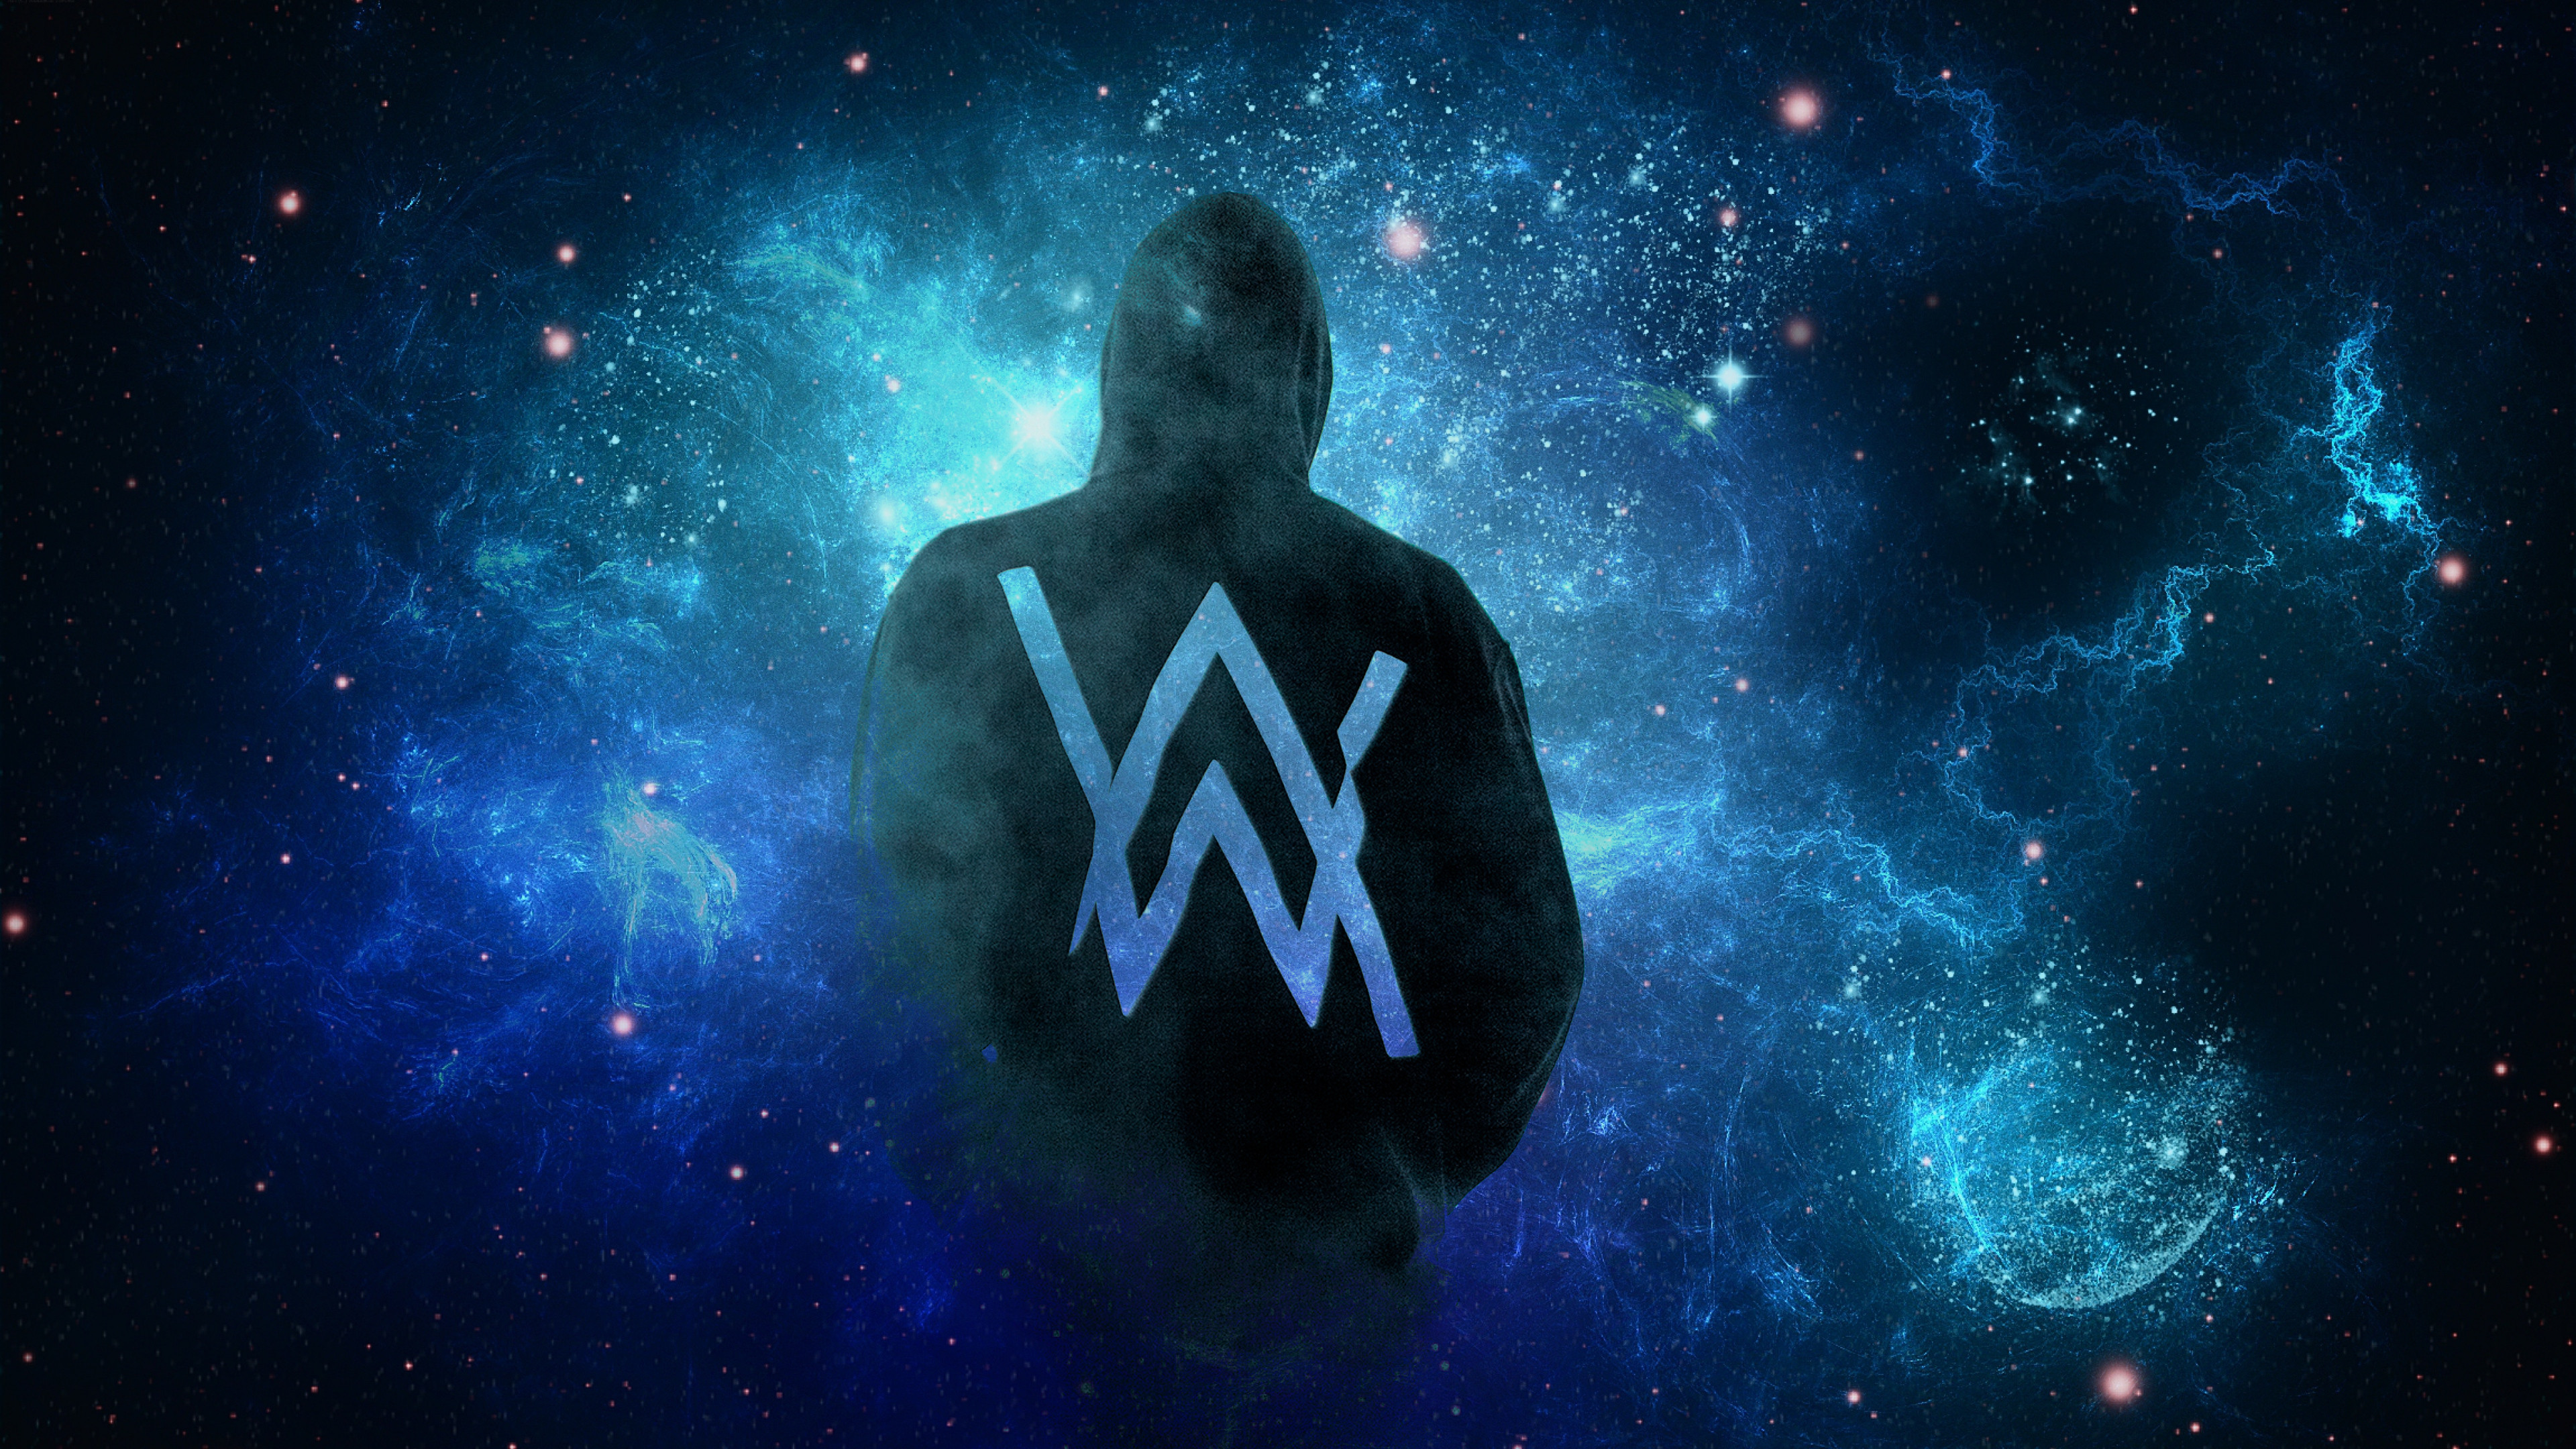 Alan Walker Wallpapers Images Photos Pictures Backgrounds 3840x2160